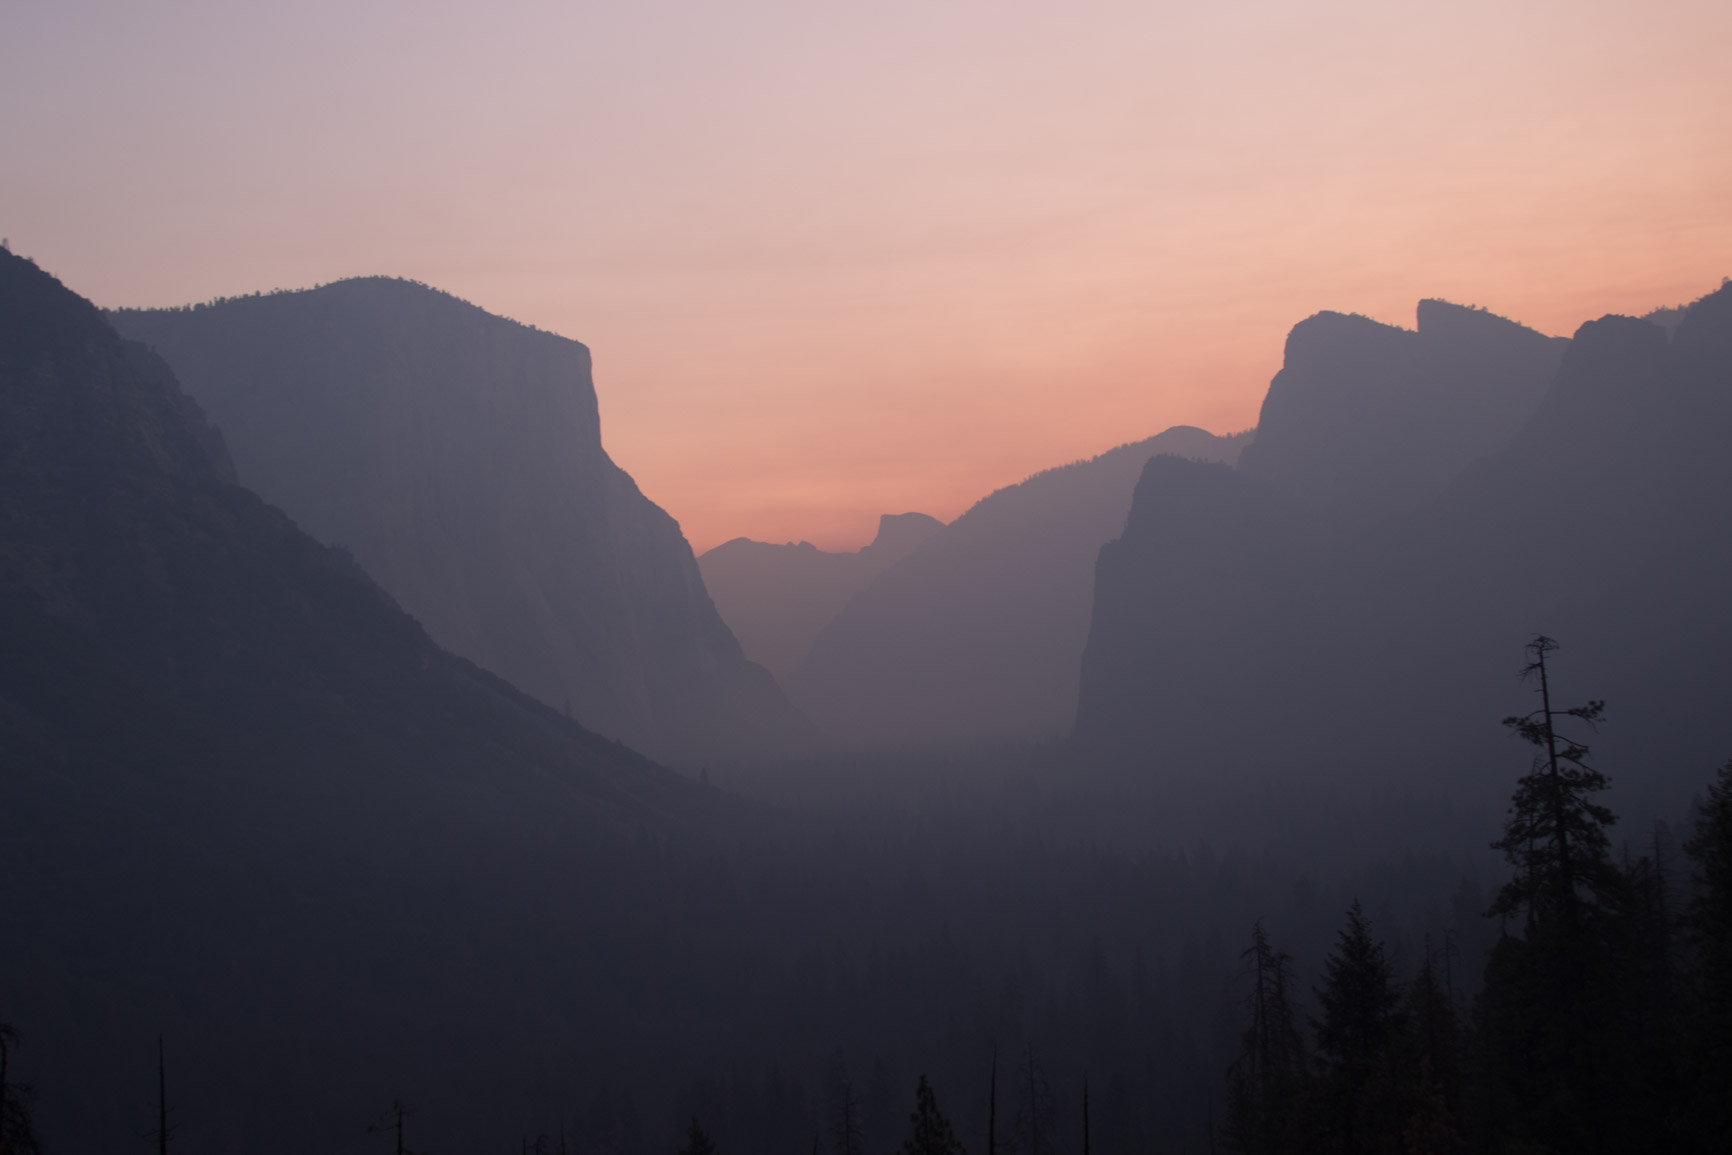 """A Trip to Yosemite: """"Of all the paths you take in life, make sure a few of them are dirt."""" -John Muir"""